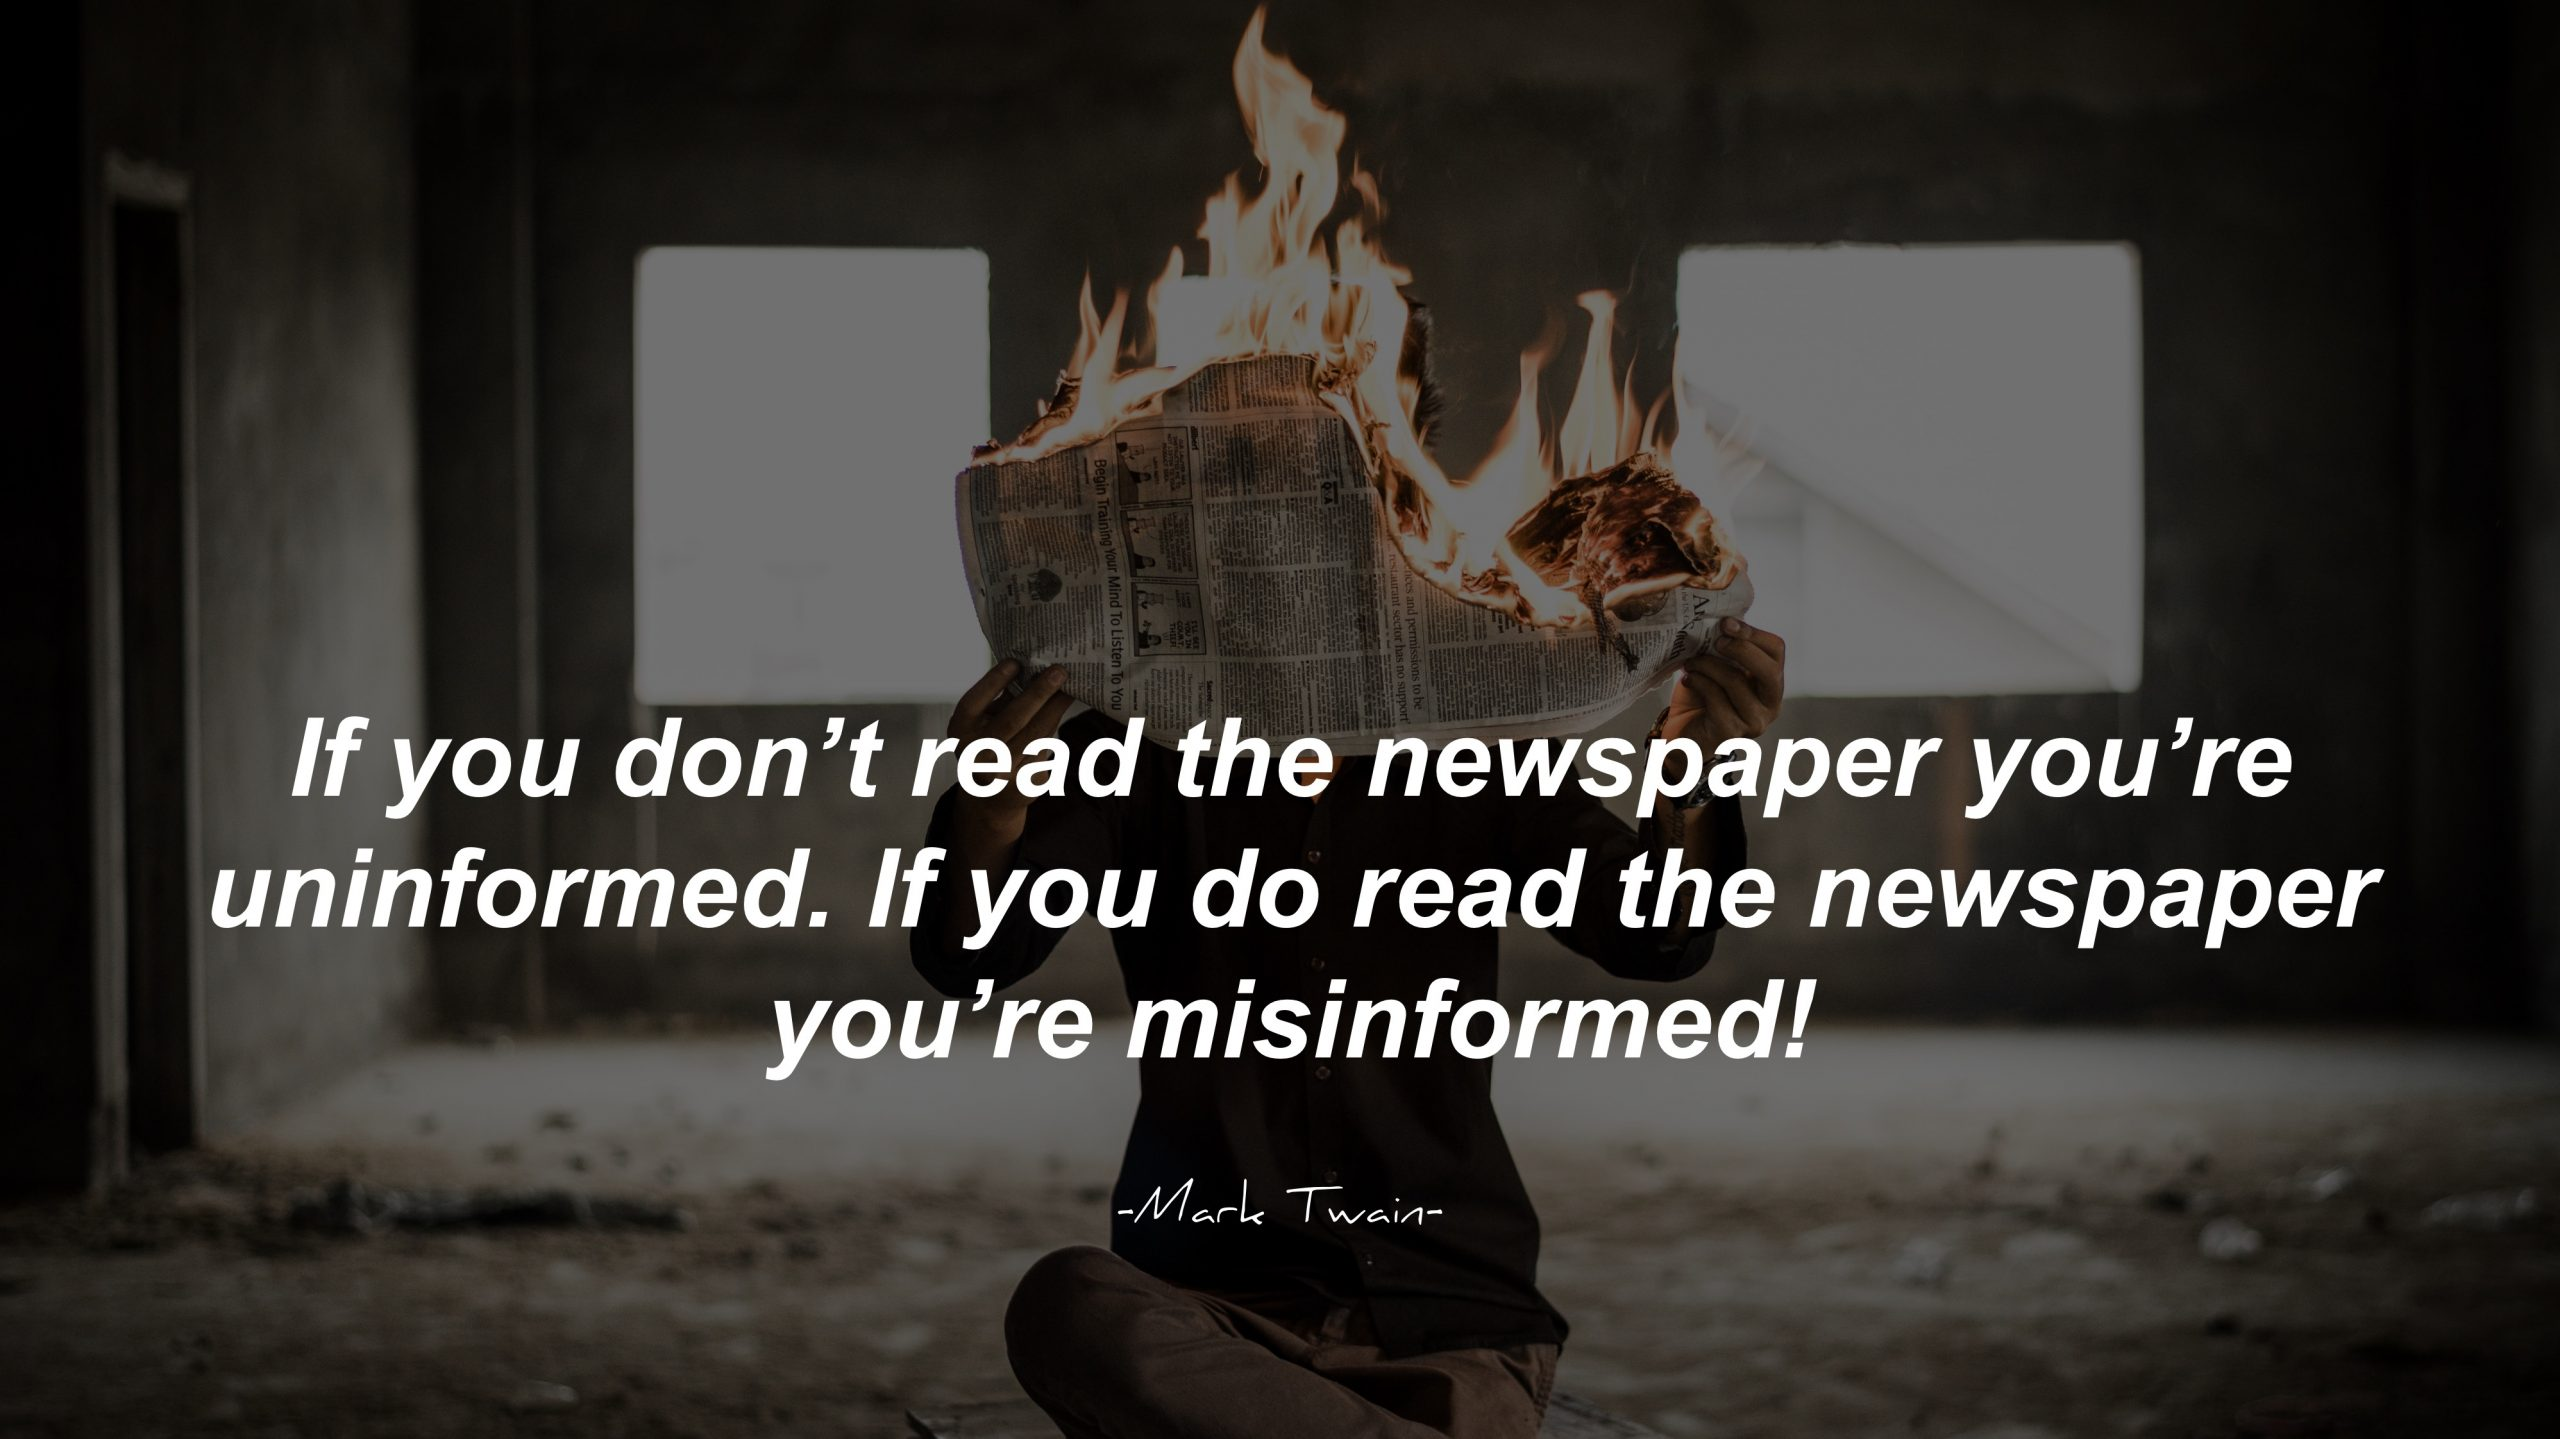 Stop watching the news - If you don't read the newspaper you're uninformed, if you read the newspaper you're misinformed. Mark Twain Denzel Washington Quote